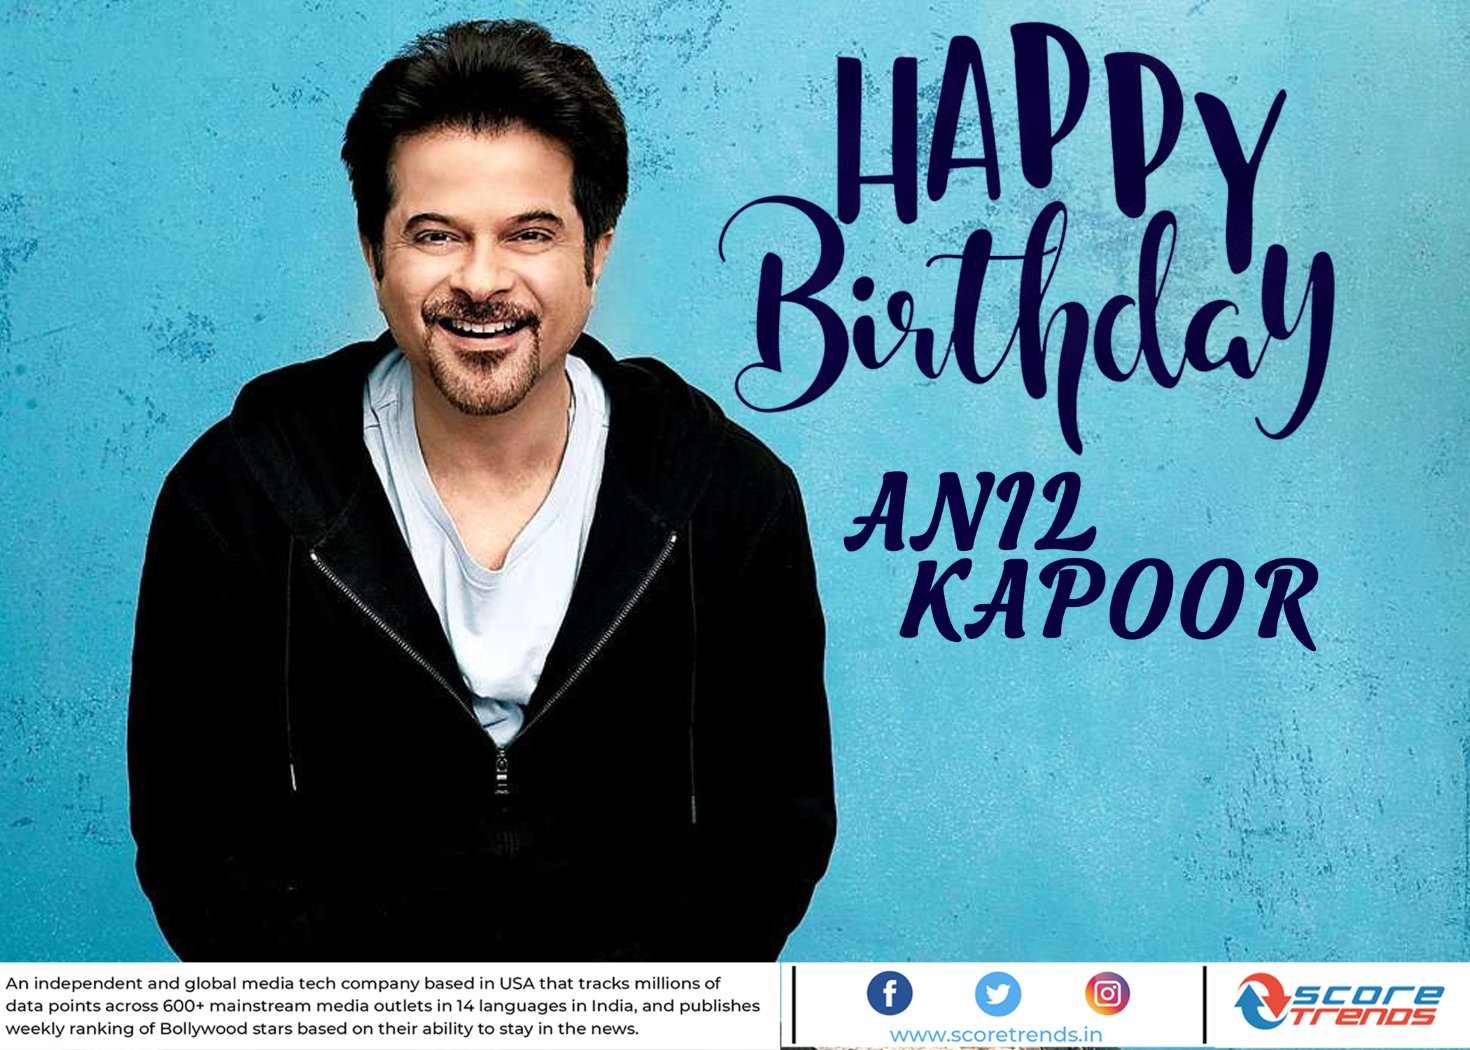 Score Trends wishes Anil Kapoor a Happy Birthday!!